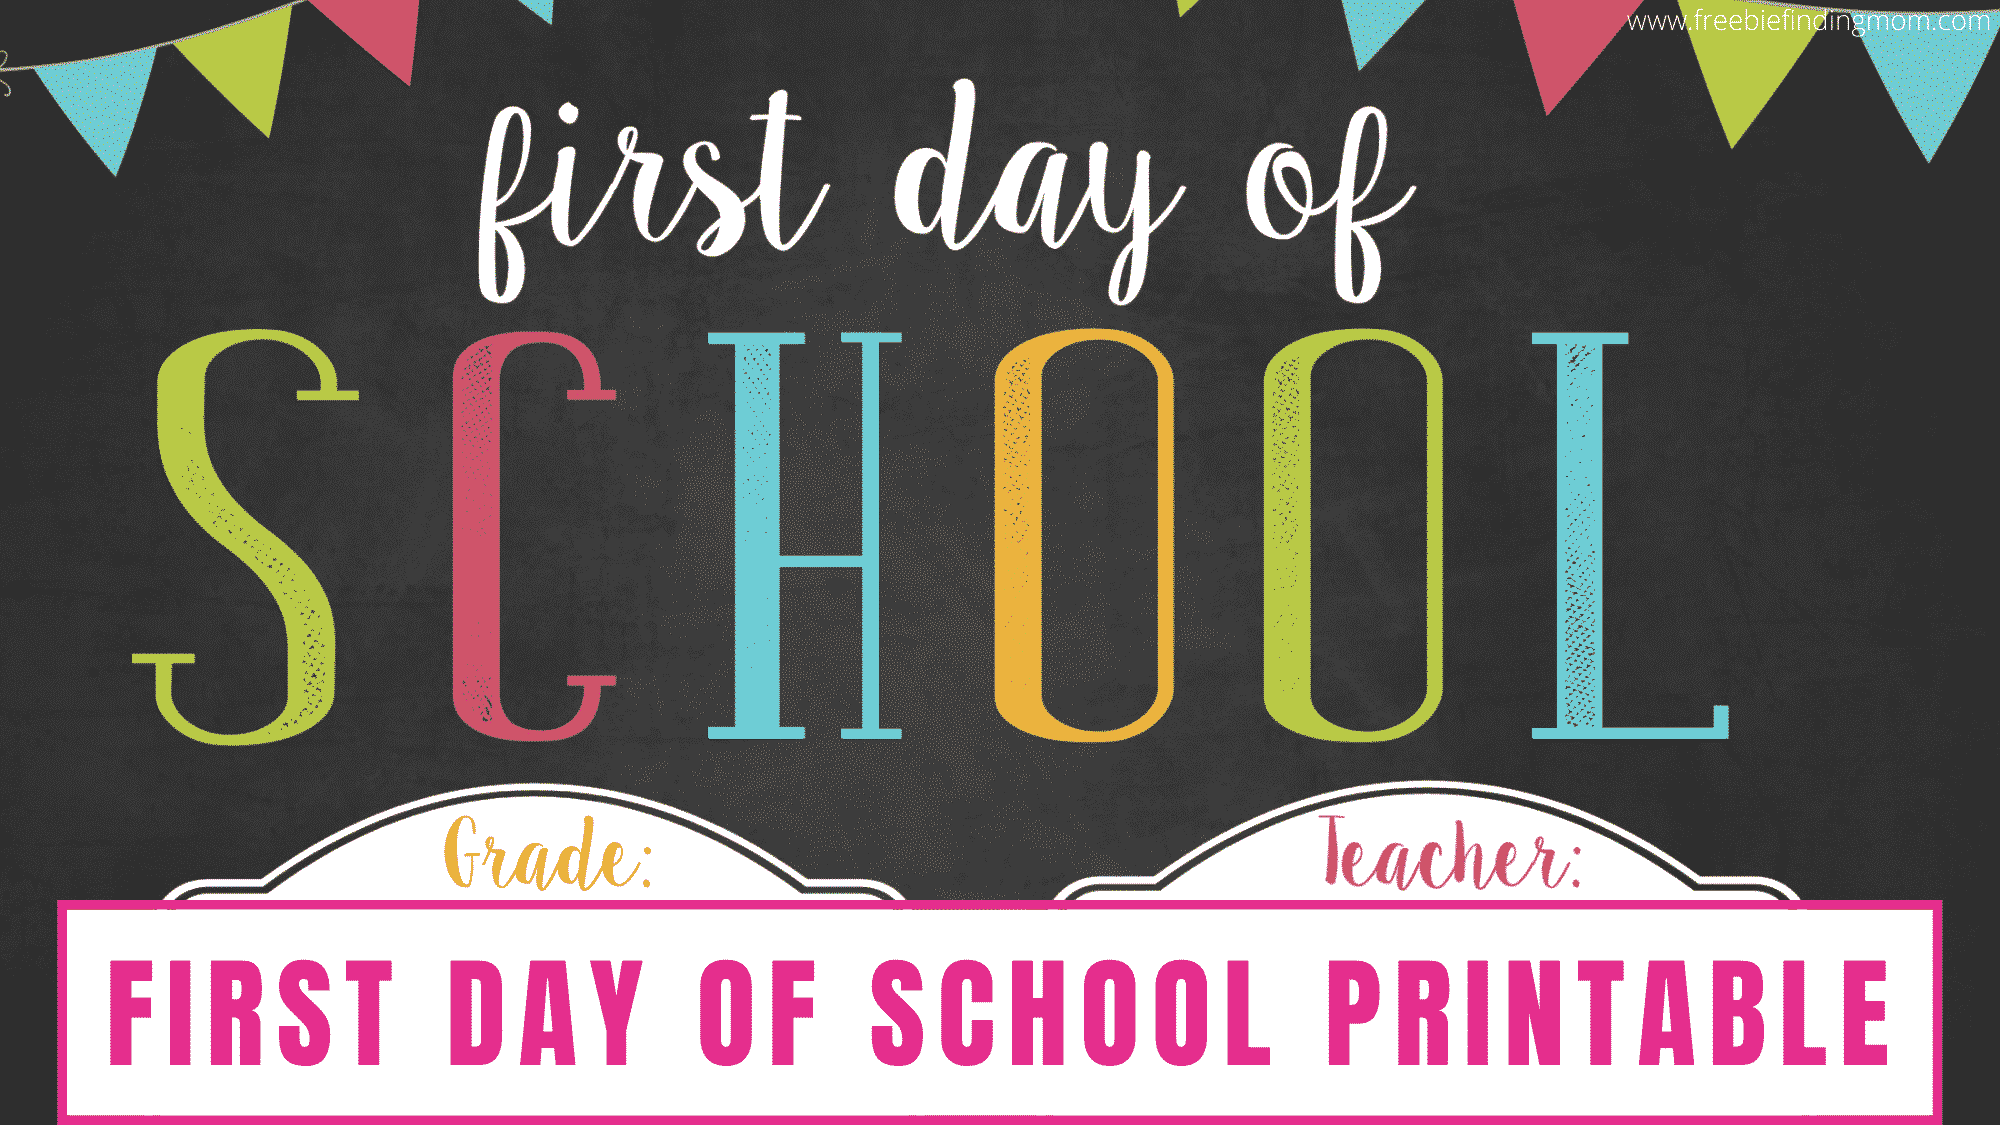 Using a first day of school template free printable is a great way to commemorate your kid's first day of school. Having them hold this free printable while you take their picture is a tradition that many parents do each year.